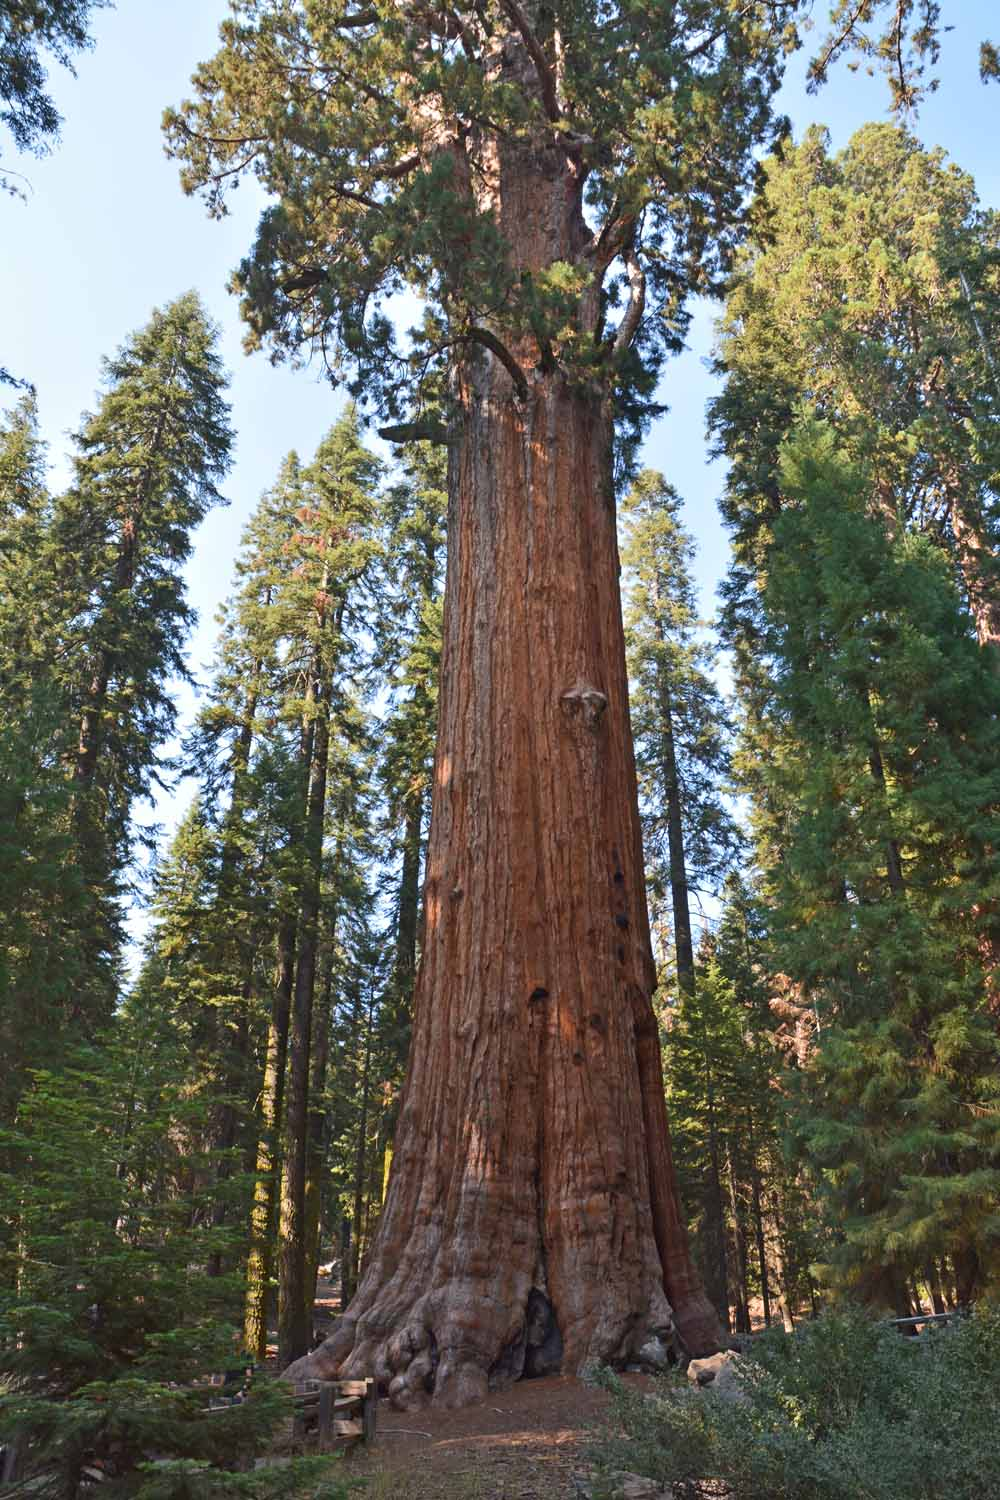 This tree is called General Sherman.  The stats for this tree were impressive.